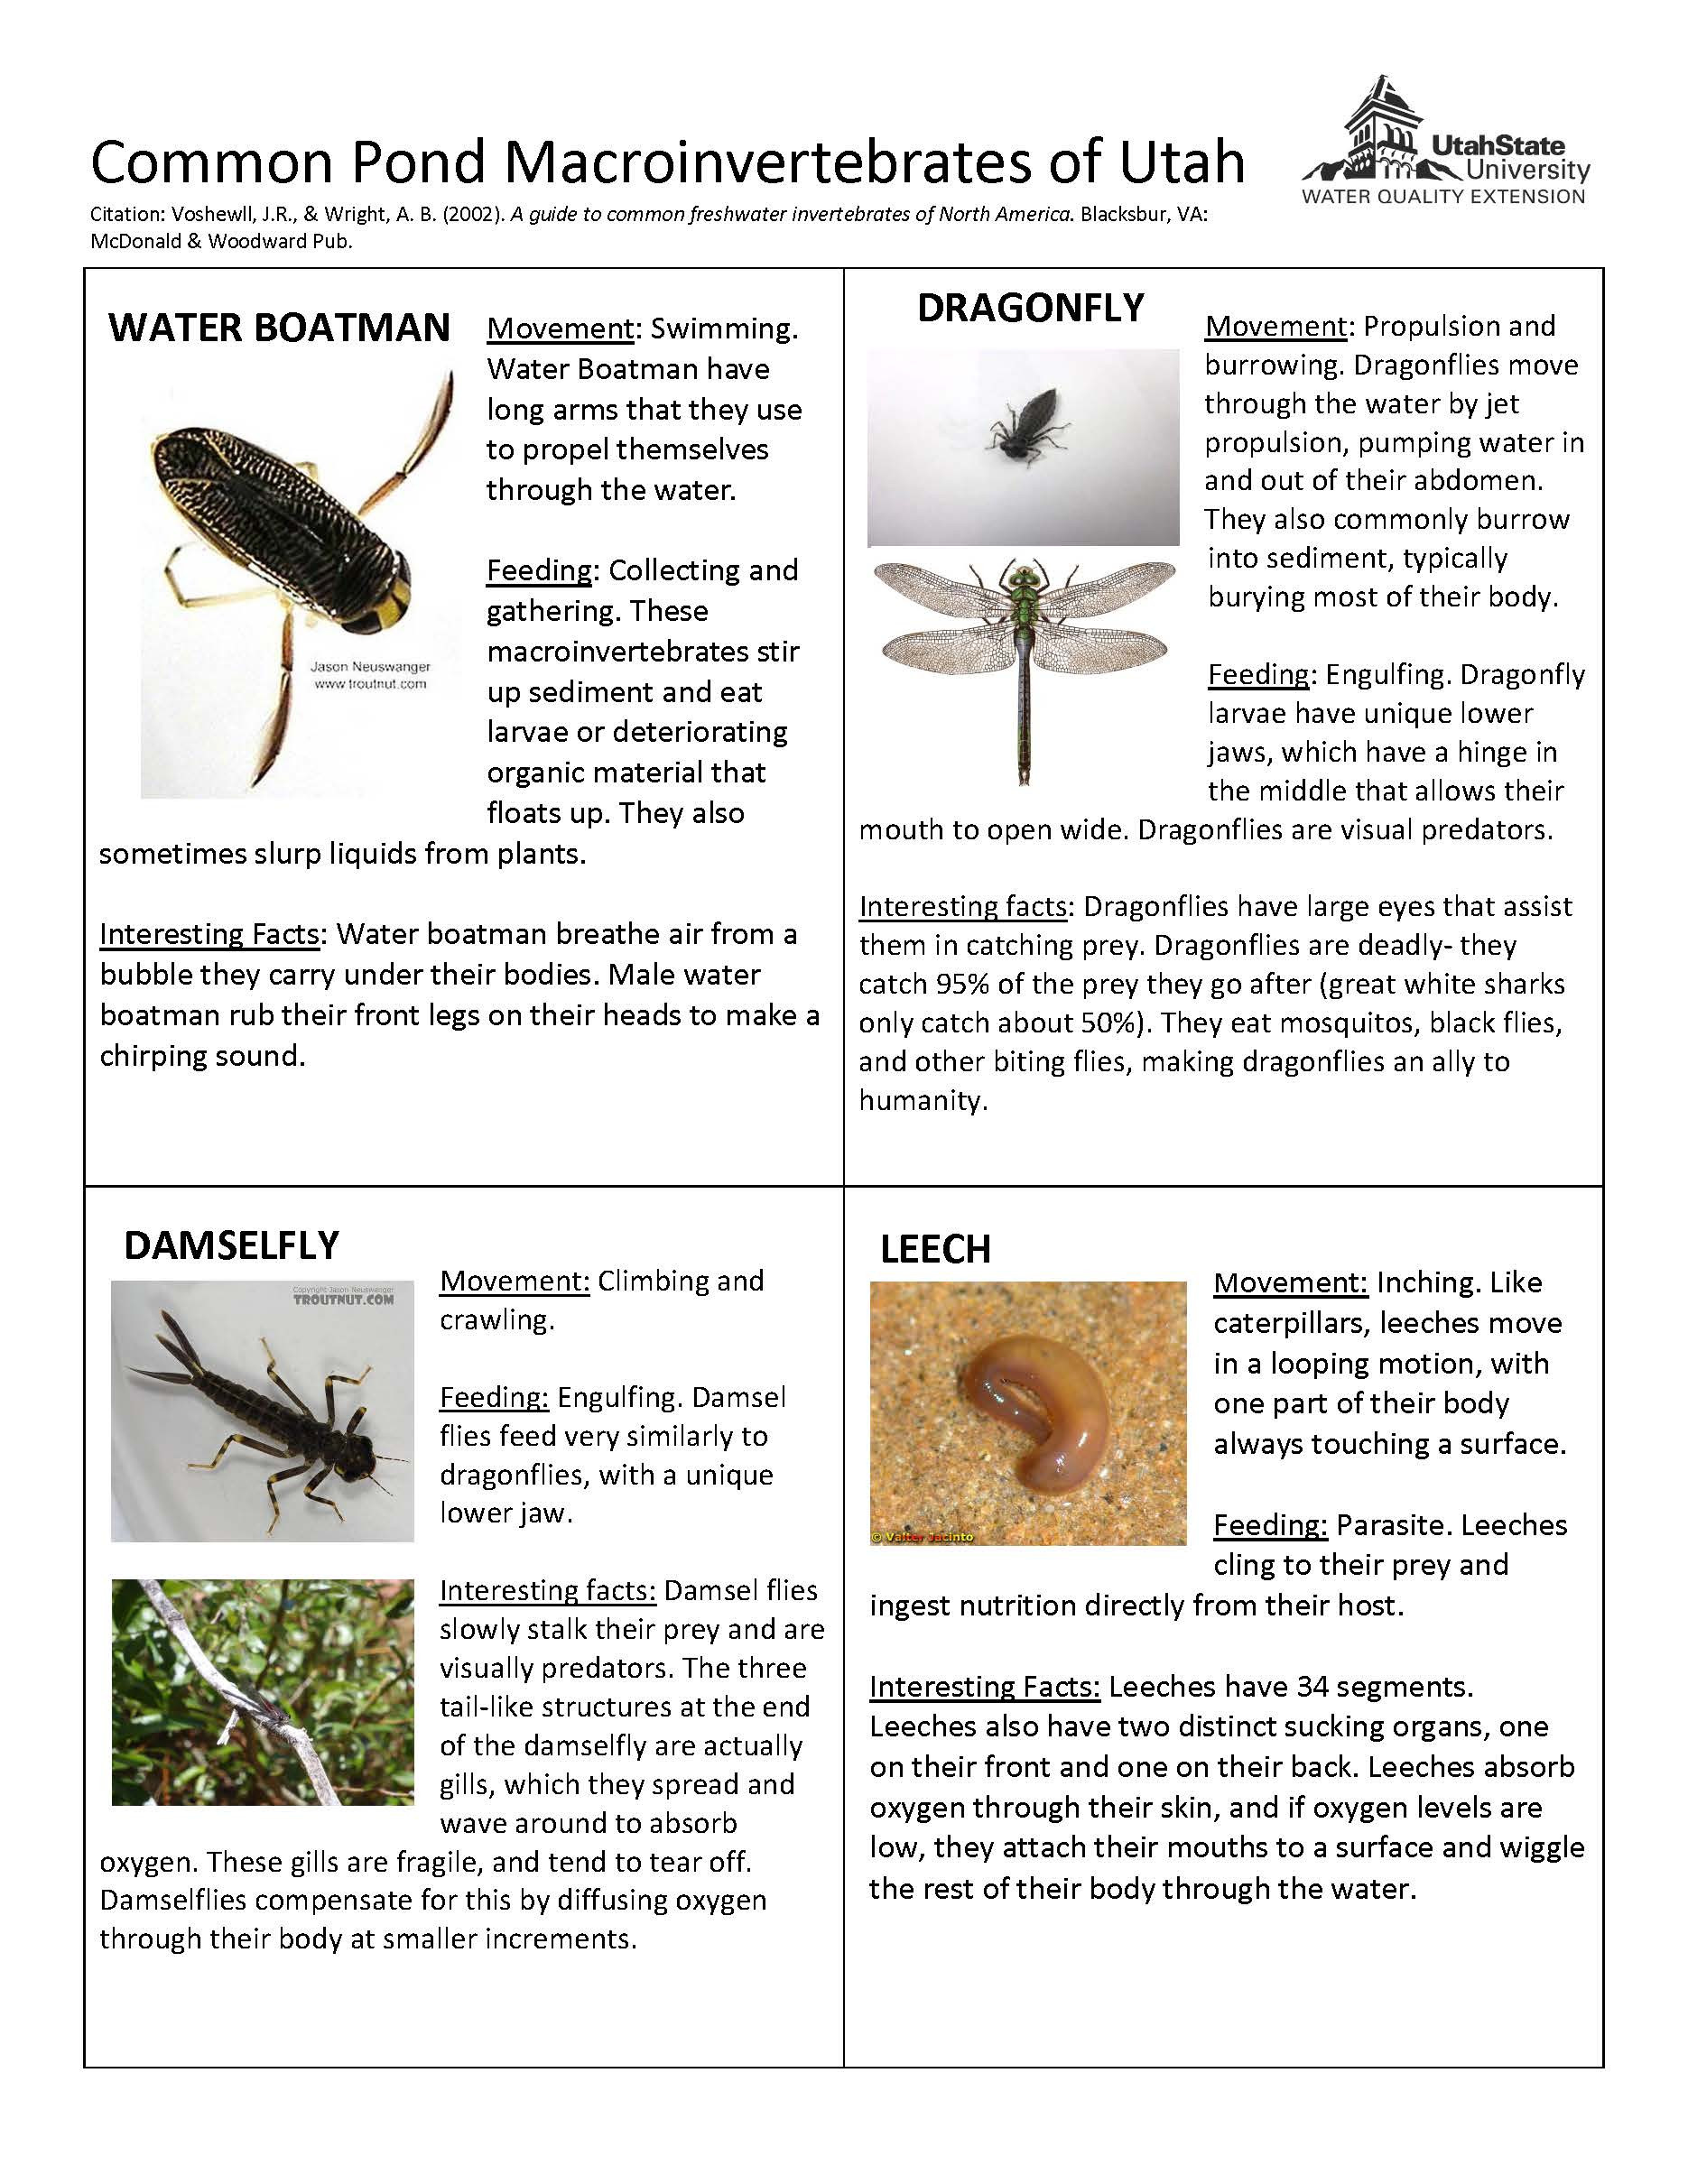 Water Quality Worksheet Middle School Aquatic Macroinvertebrate Lesson Plans